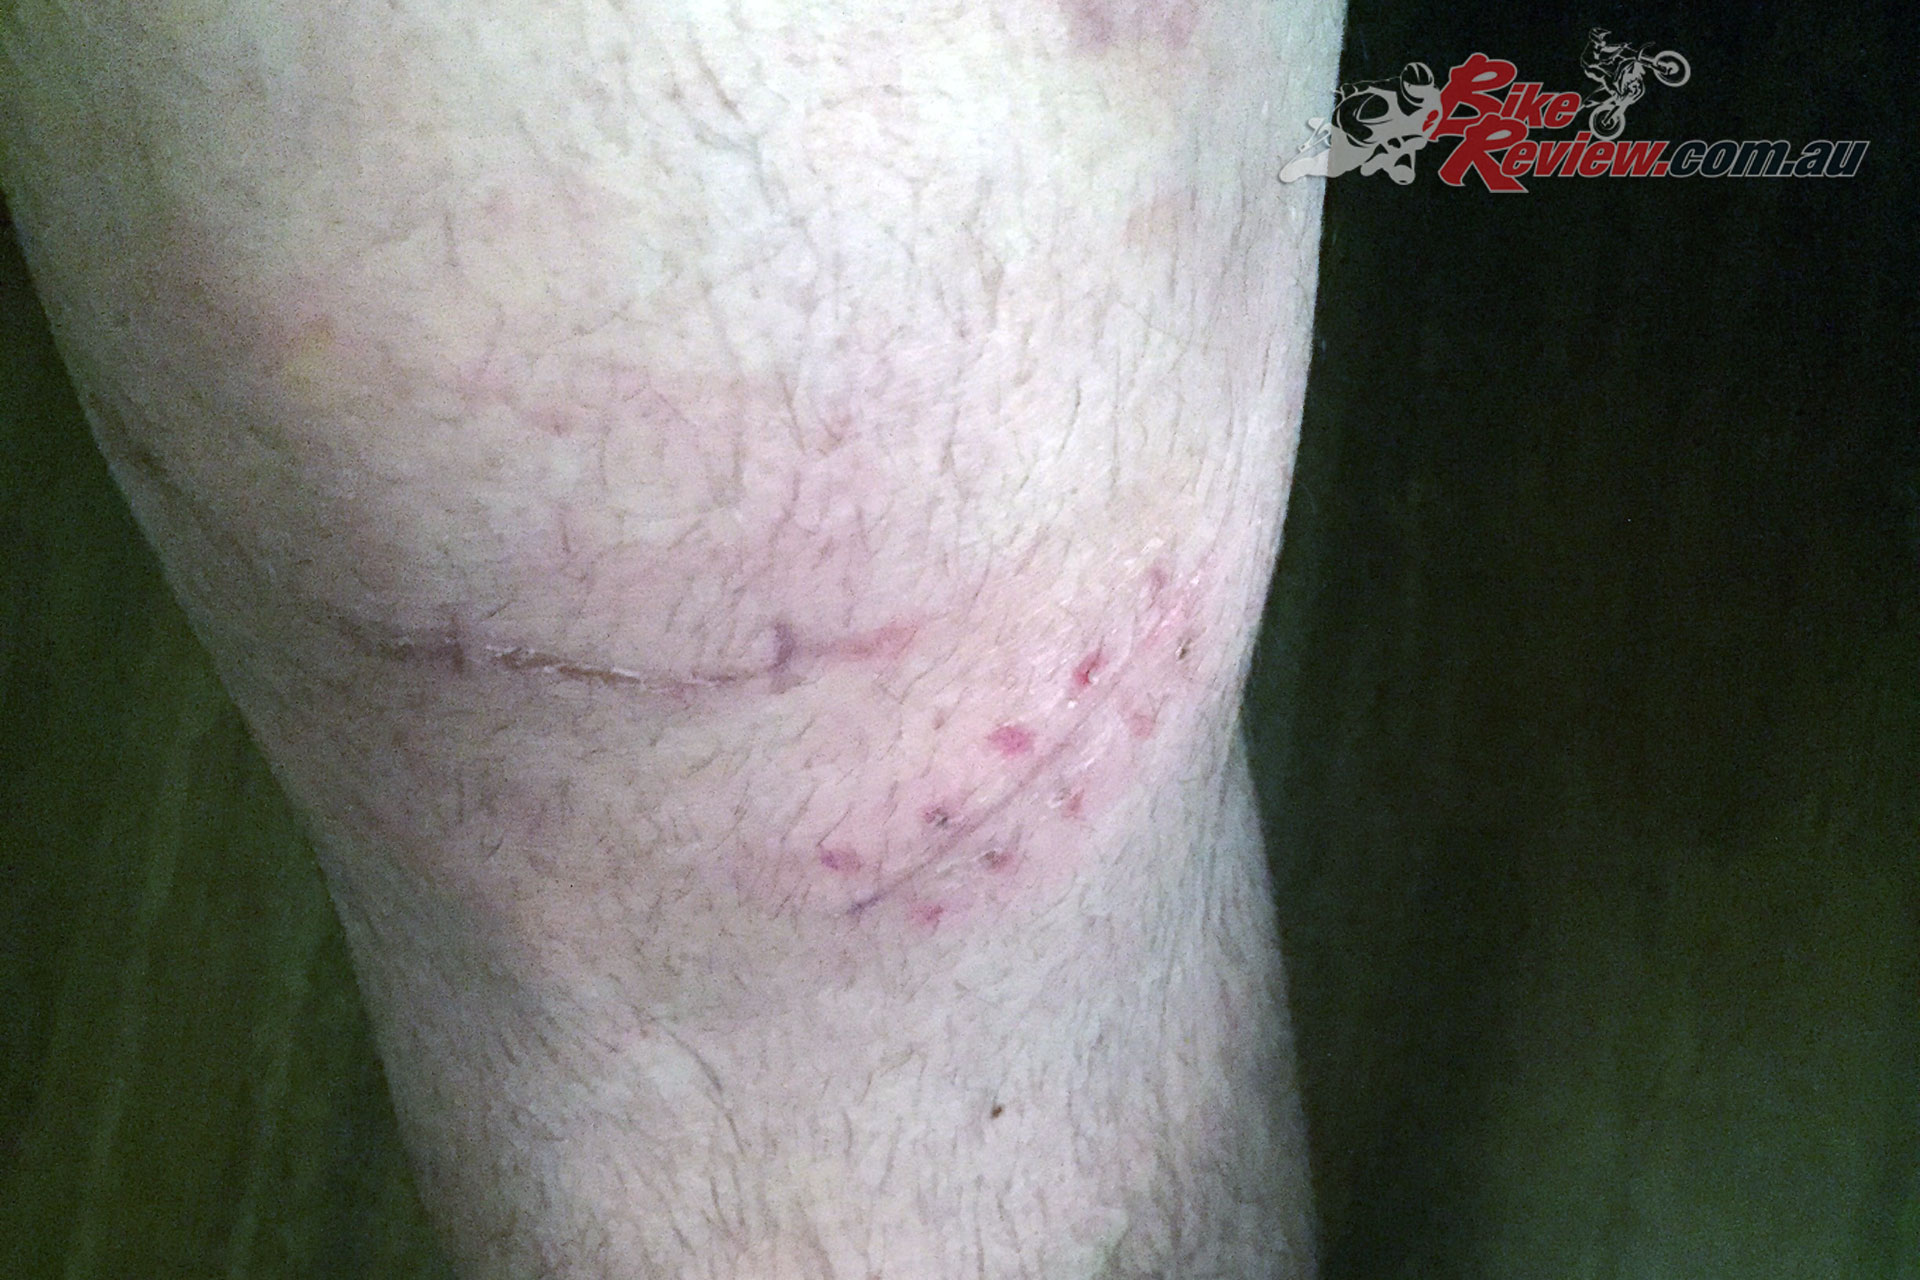 Jeff did a number on his leg during an off-road bike launch - here's the scars.